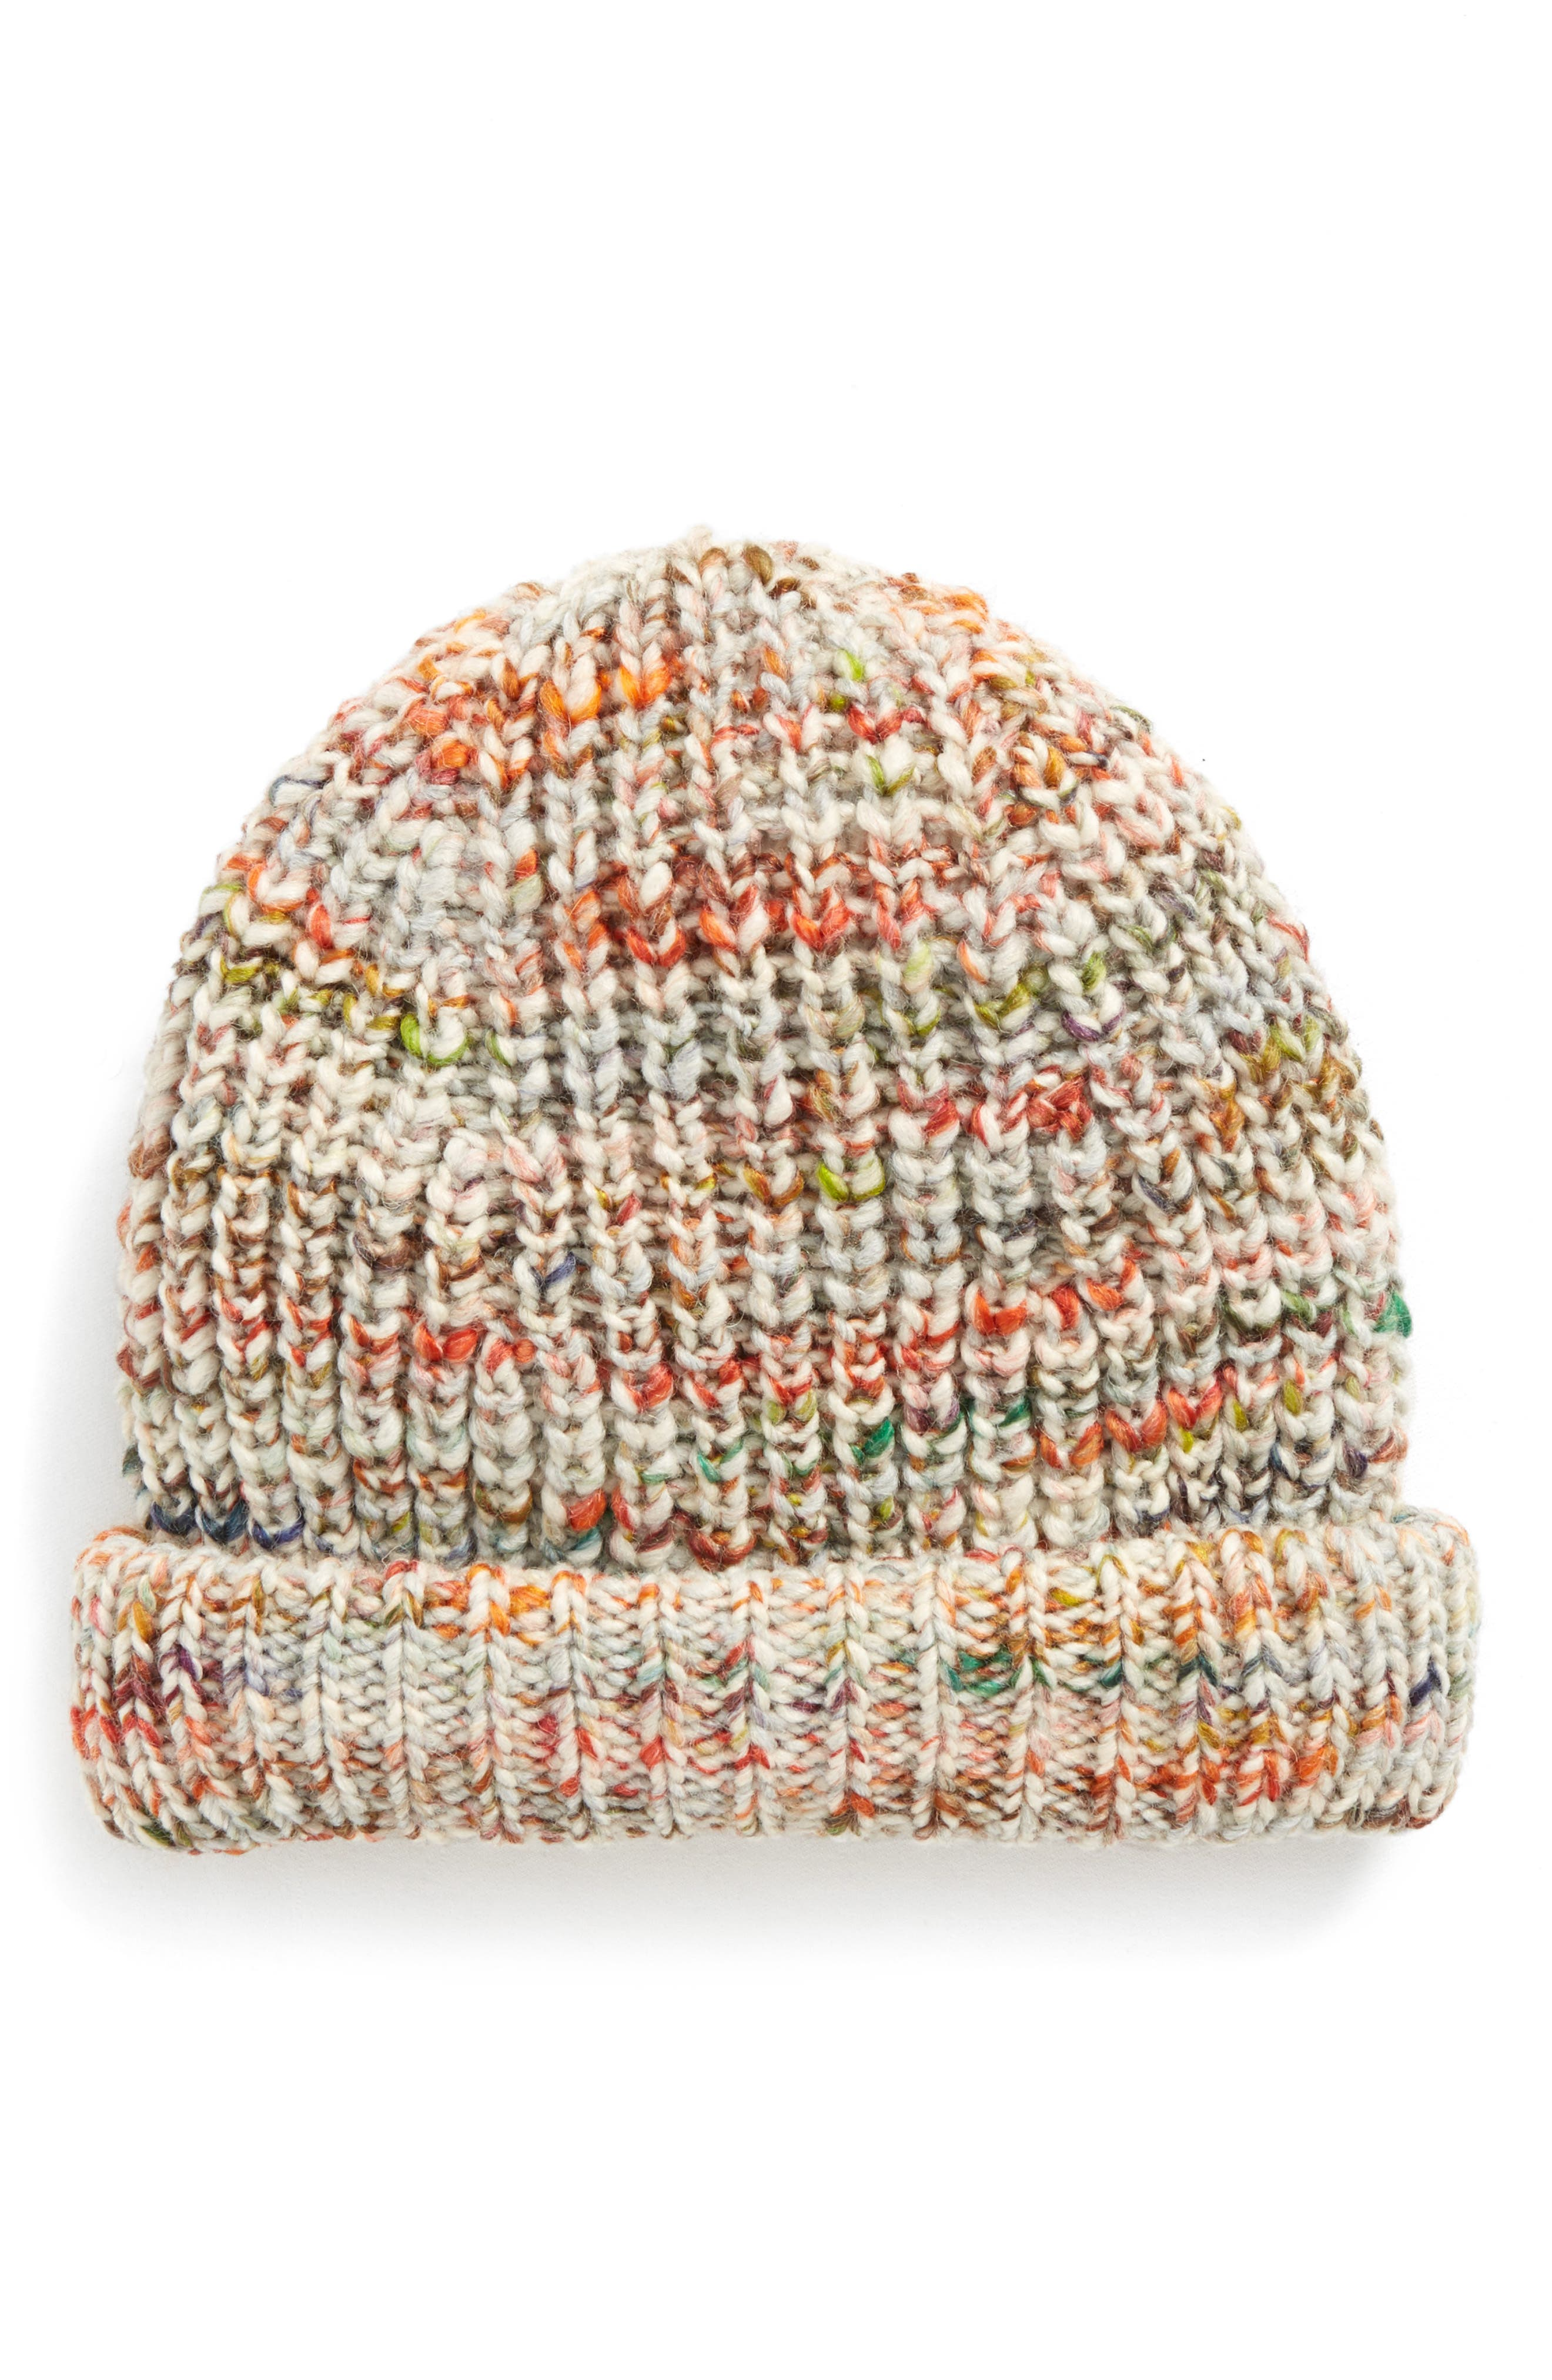 Zefir Knit Beanie,                         Main,                         color, 100